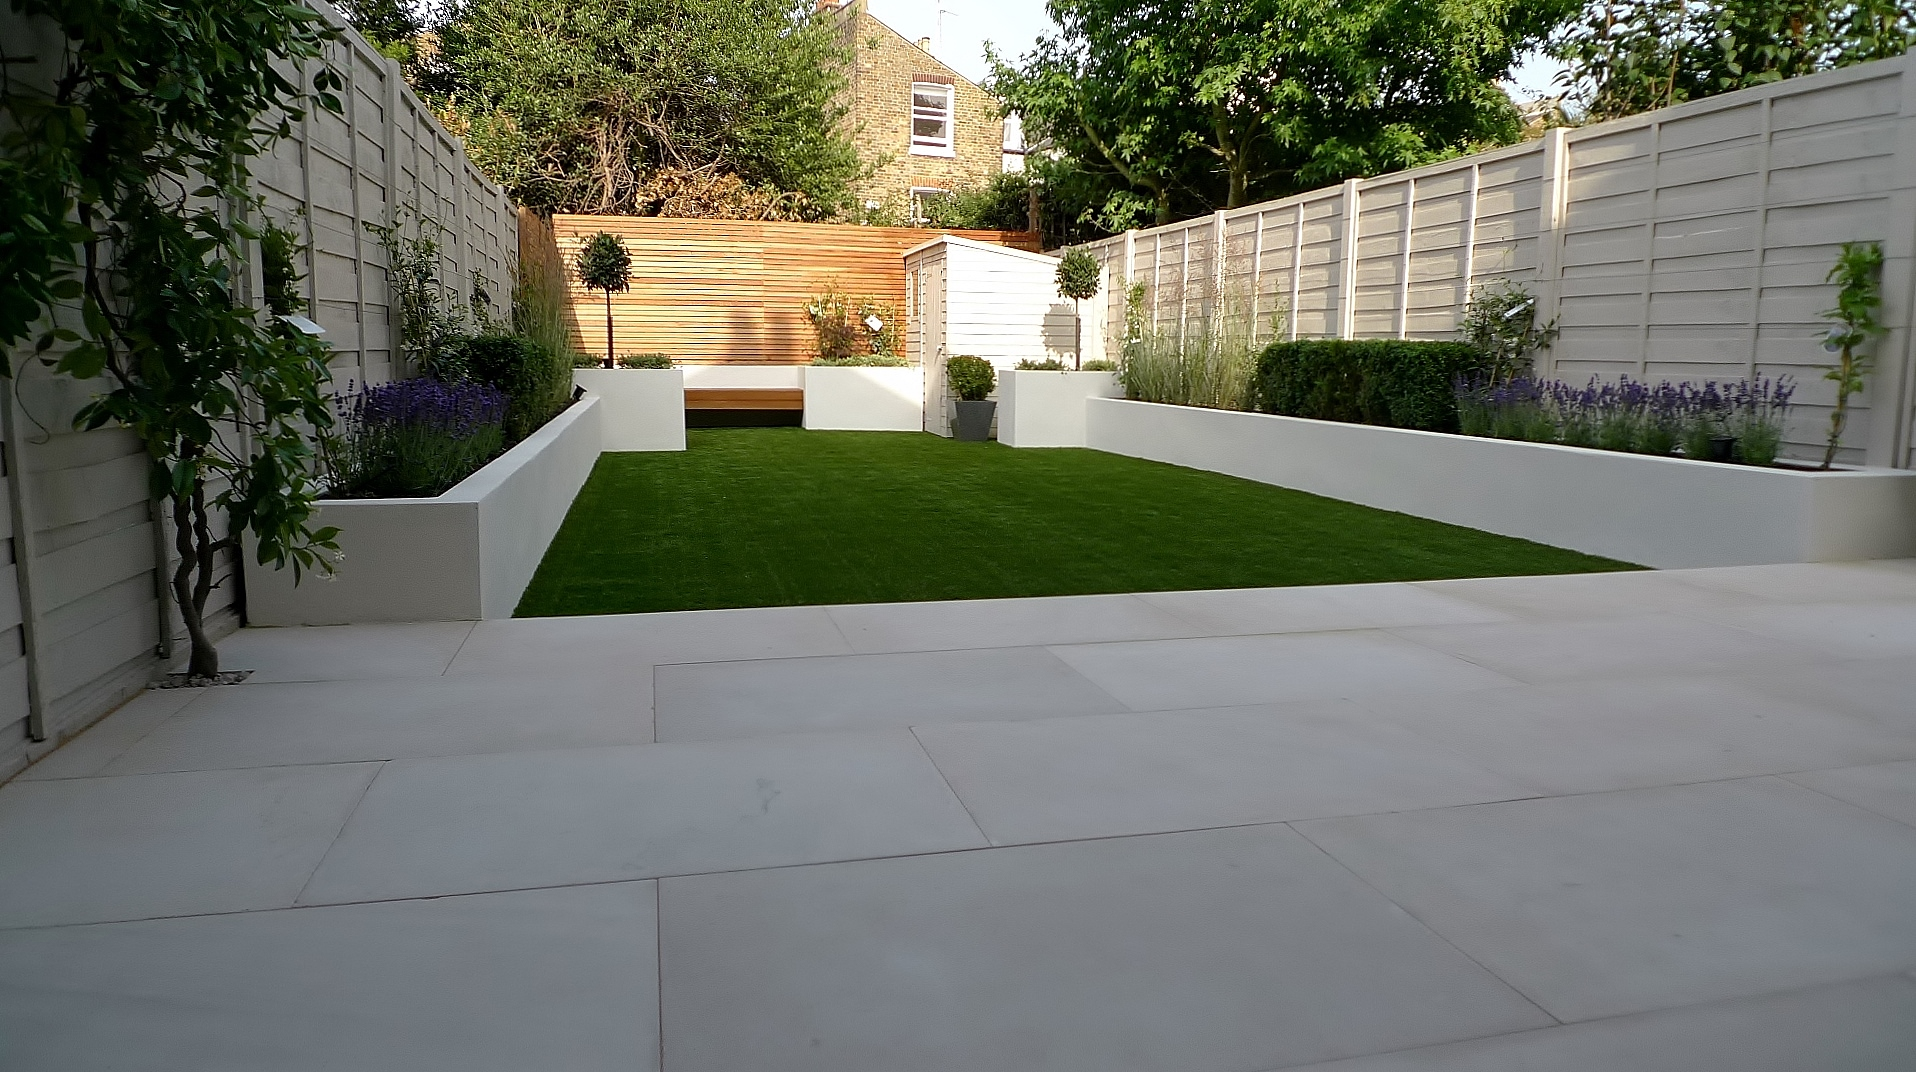 Anewgarden london garden blog - Garden ideas london ...